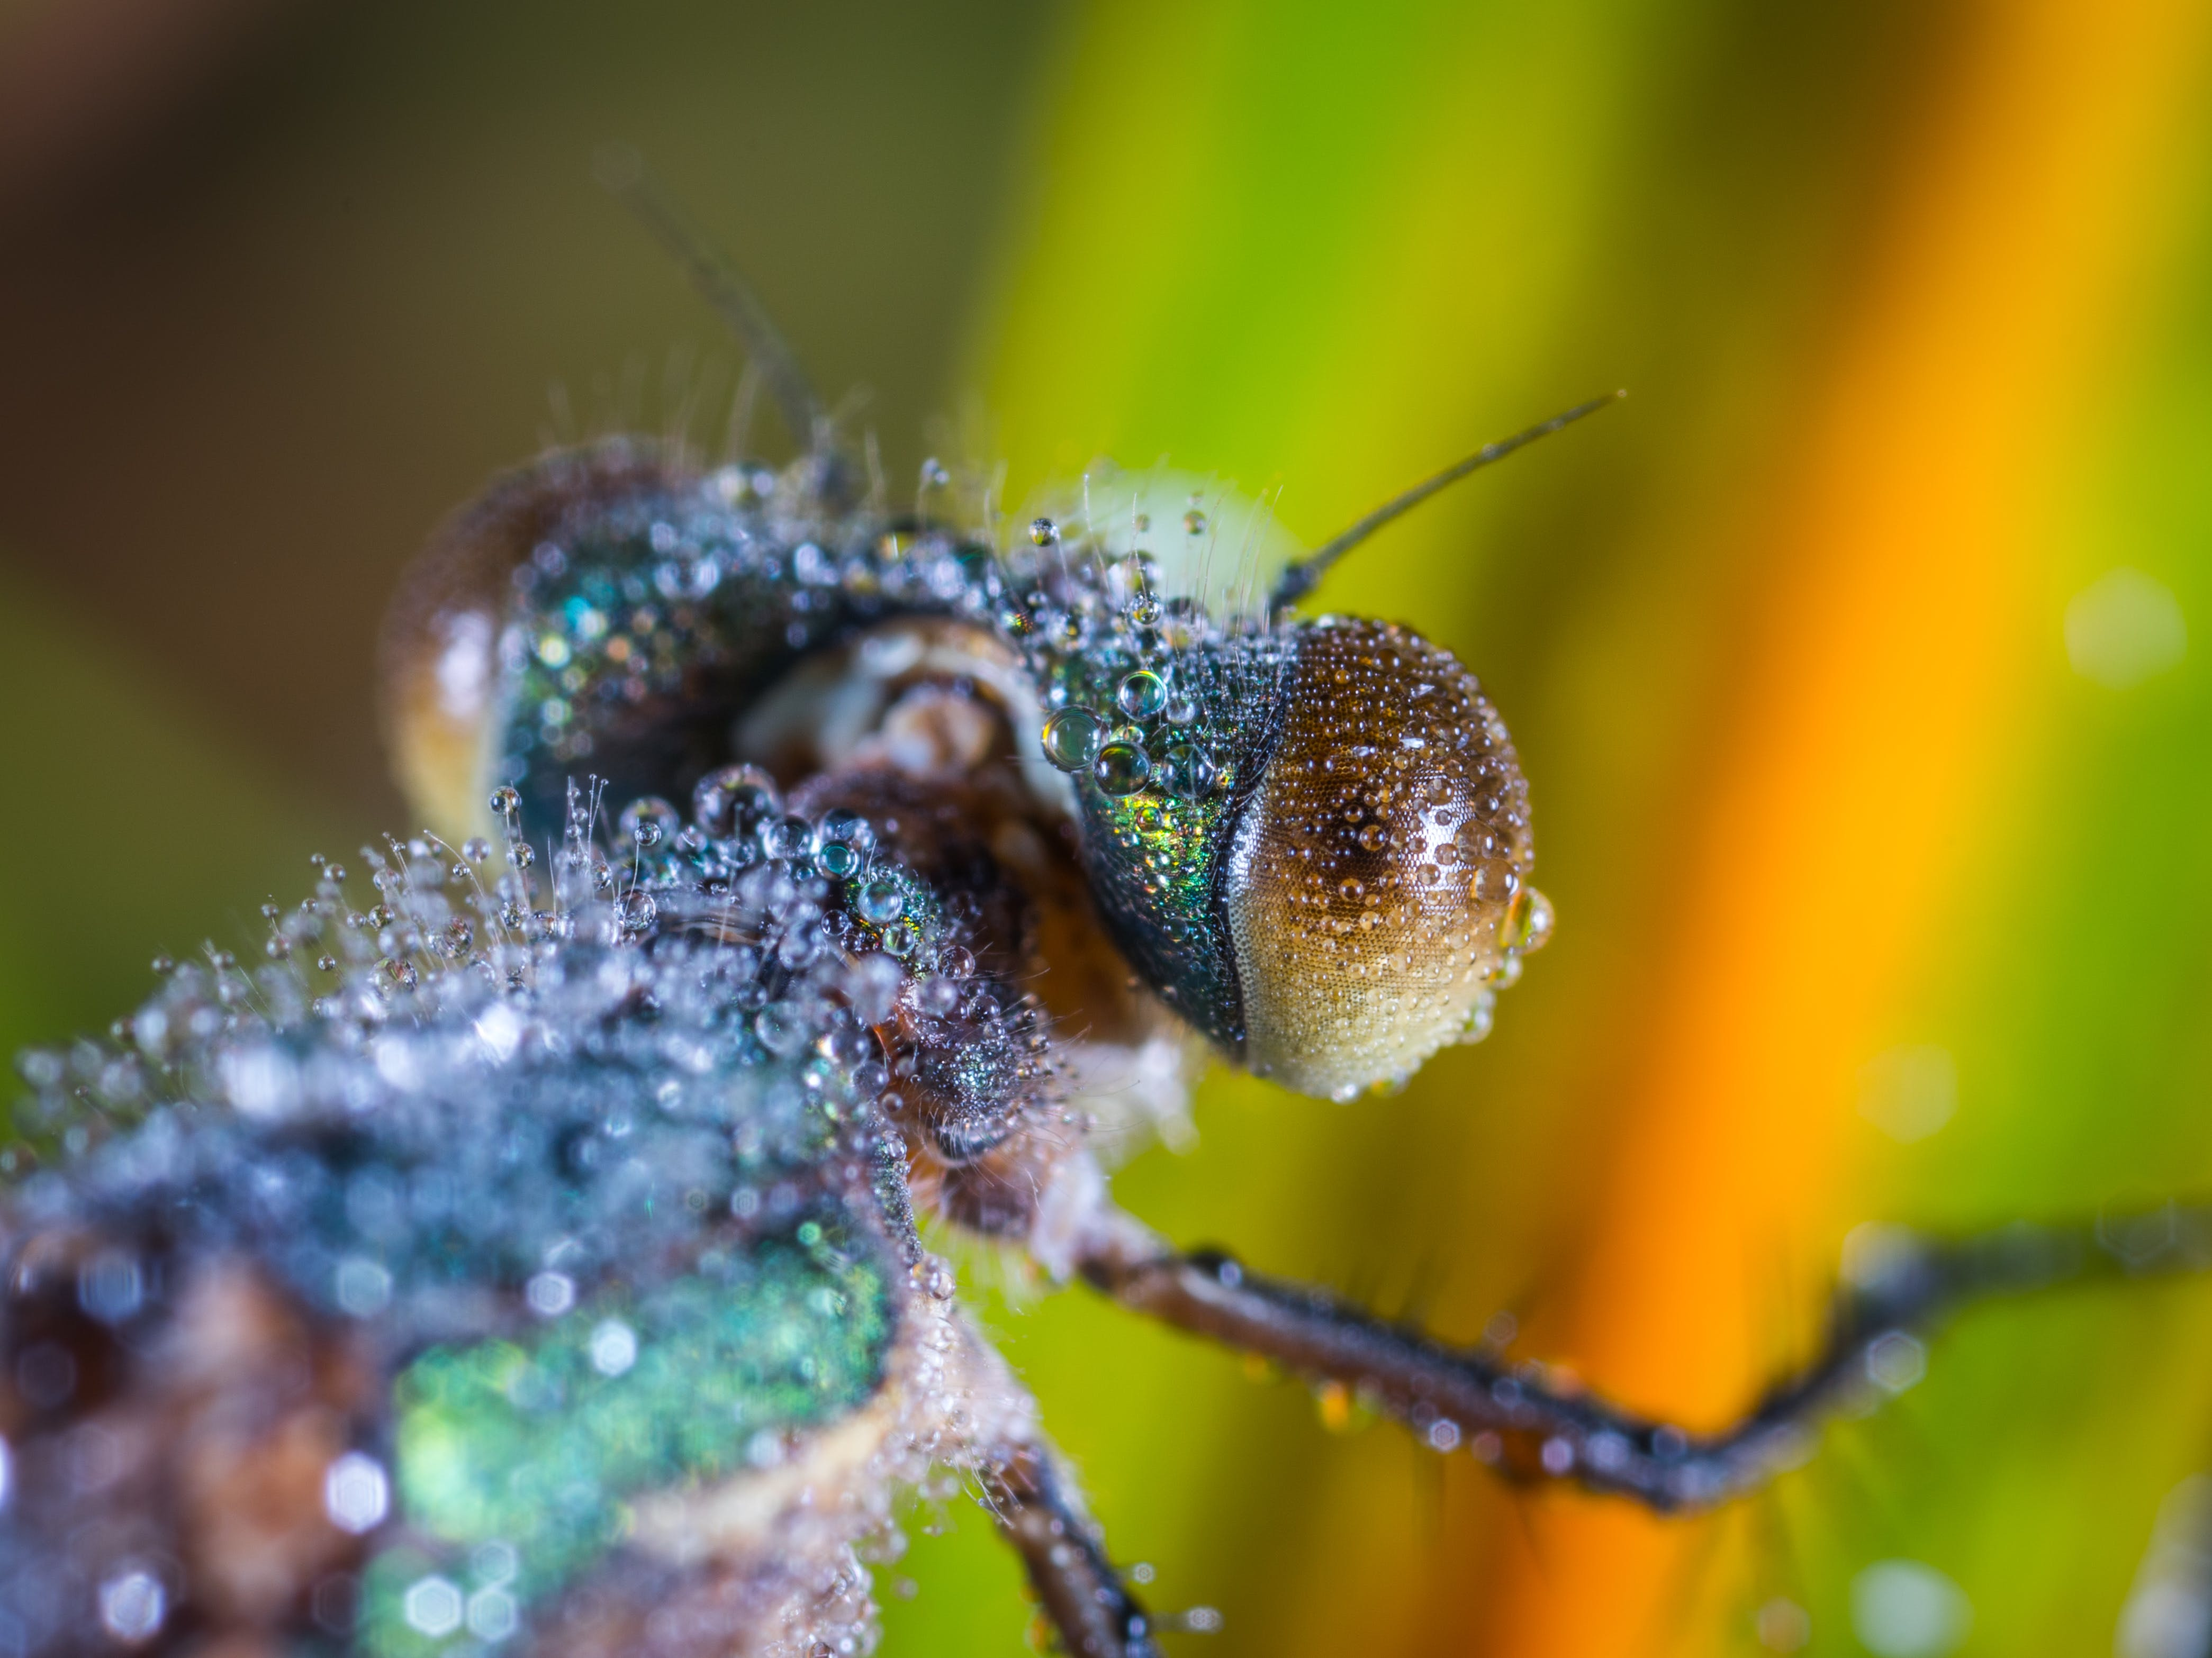 Tilt Shift Lens Photography of Brown and Black Insect